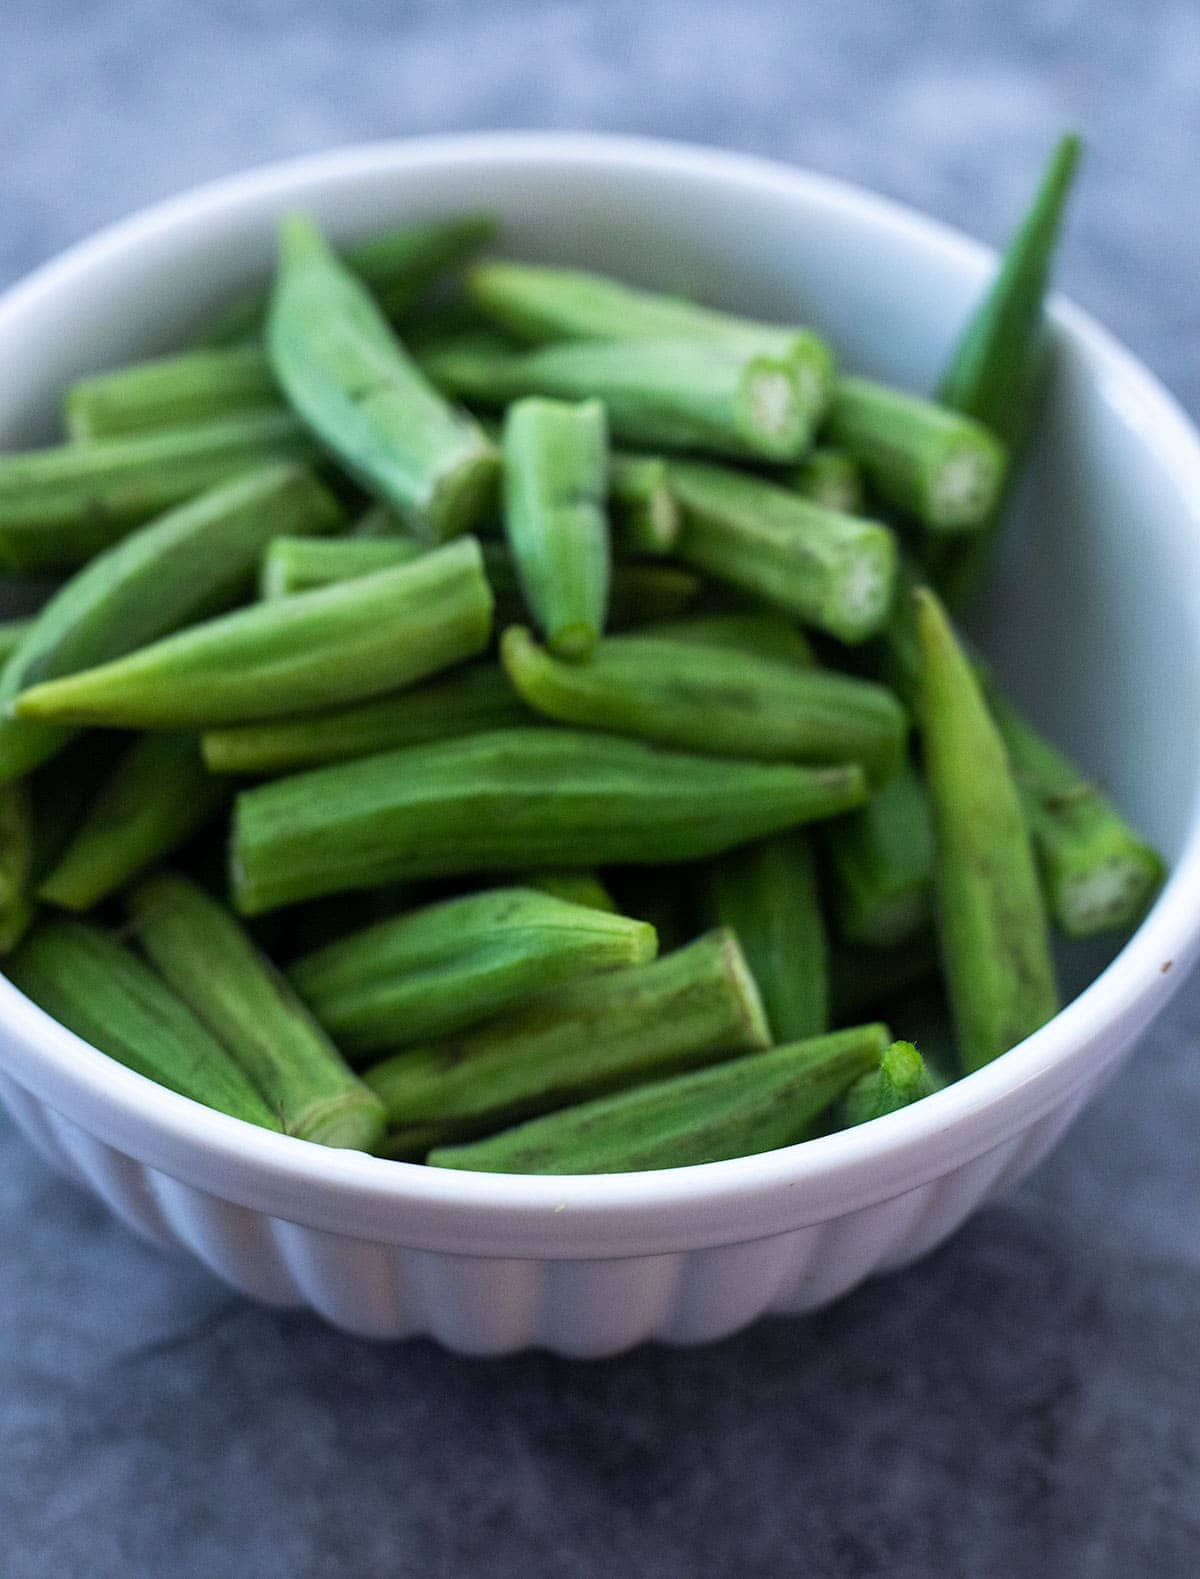 Okra in a white bowl for making okra fries